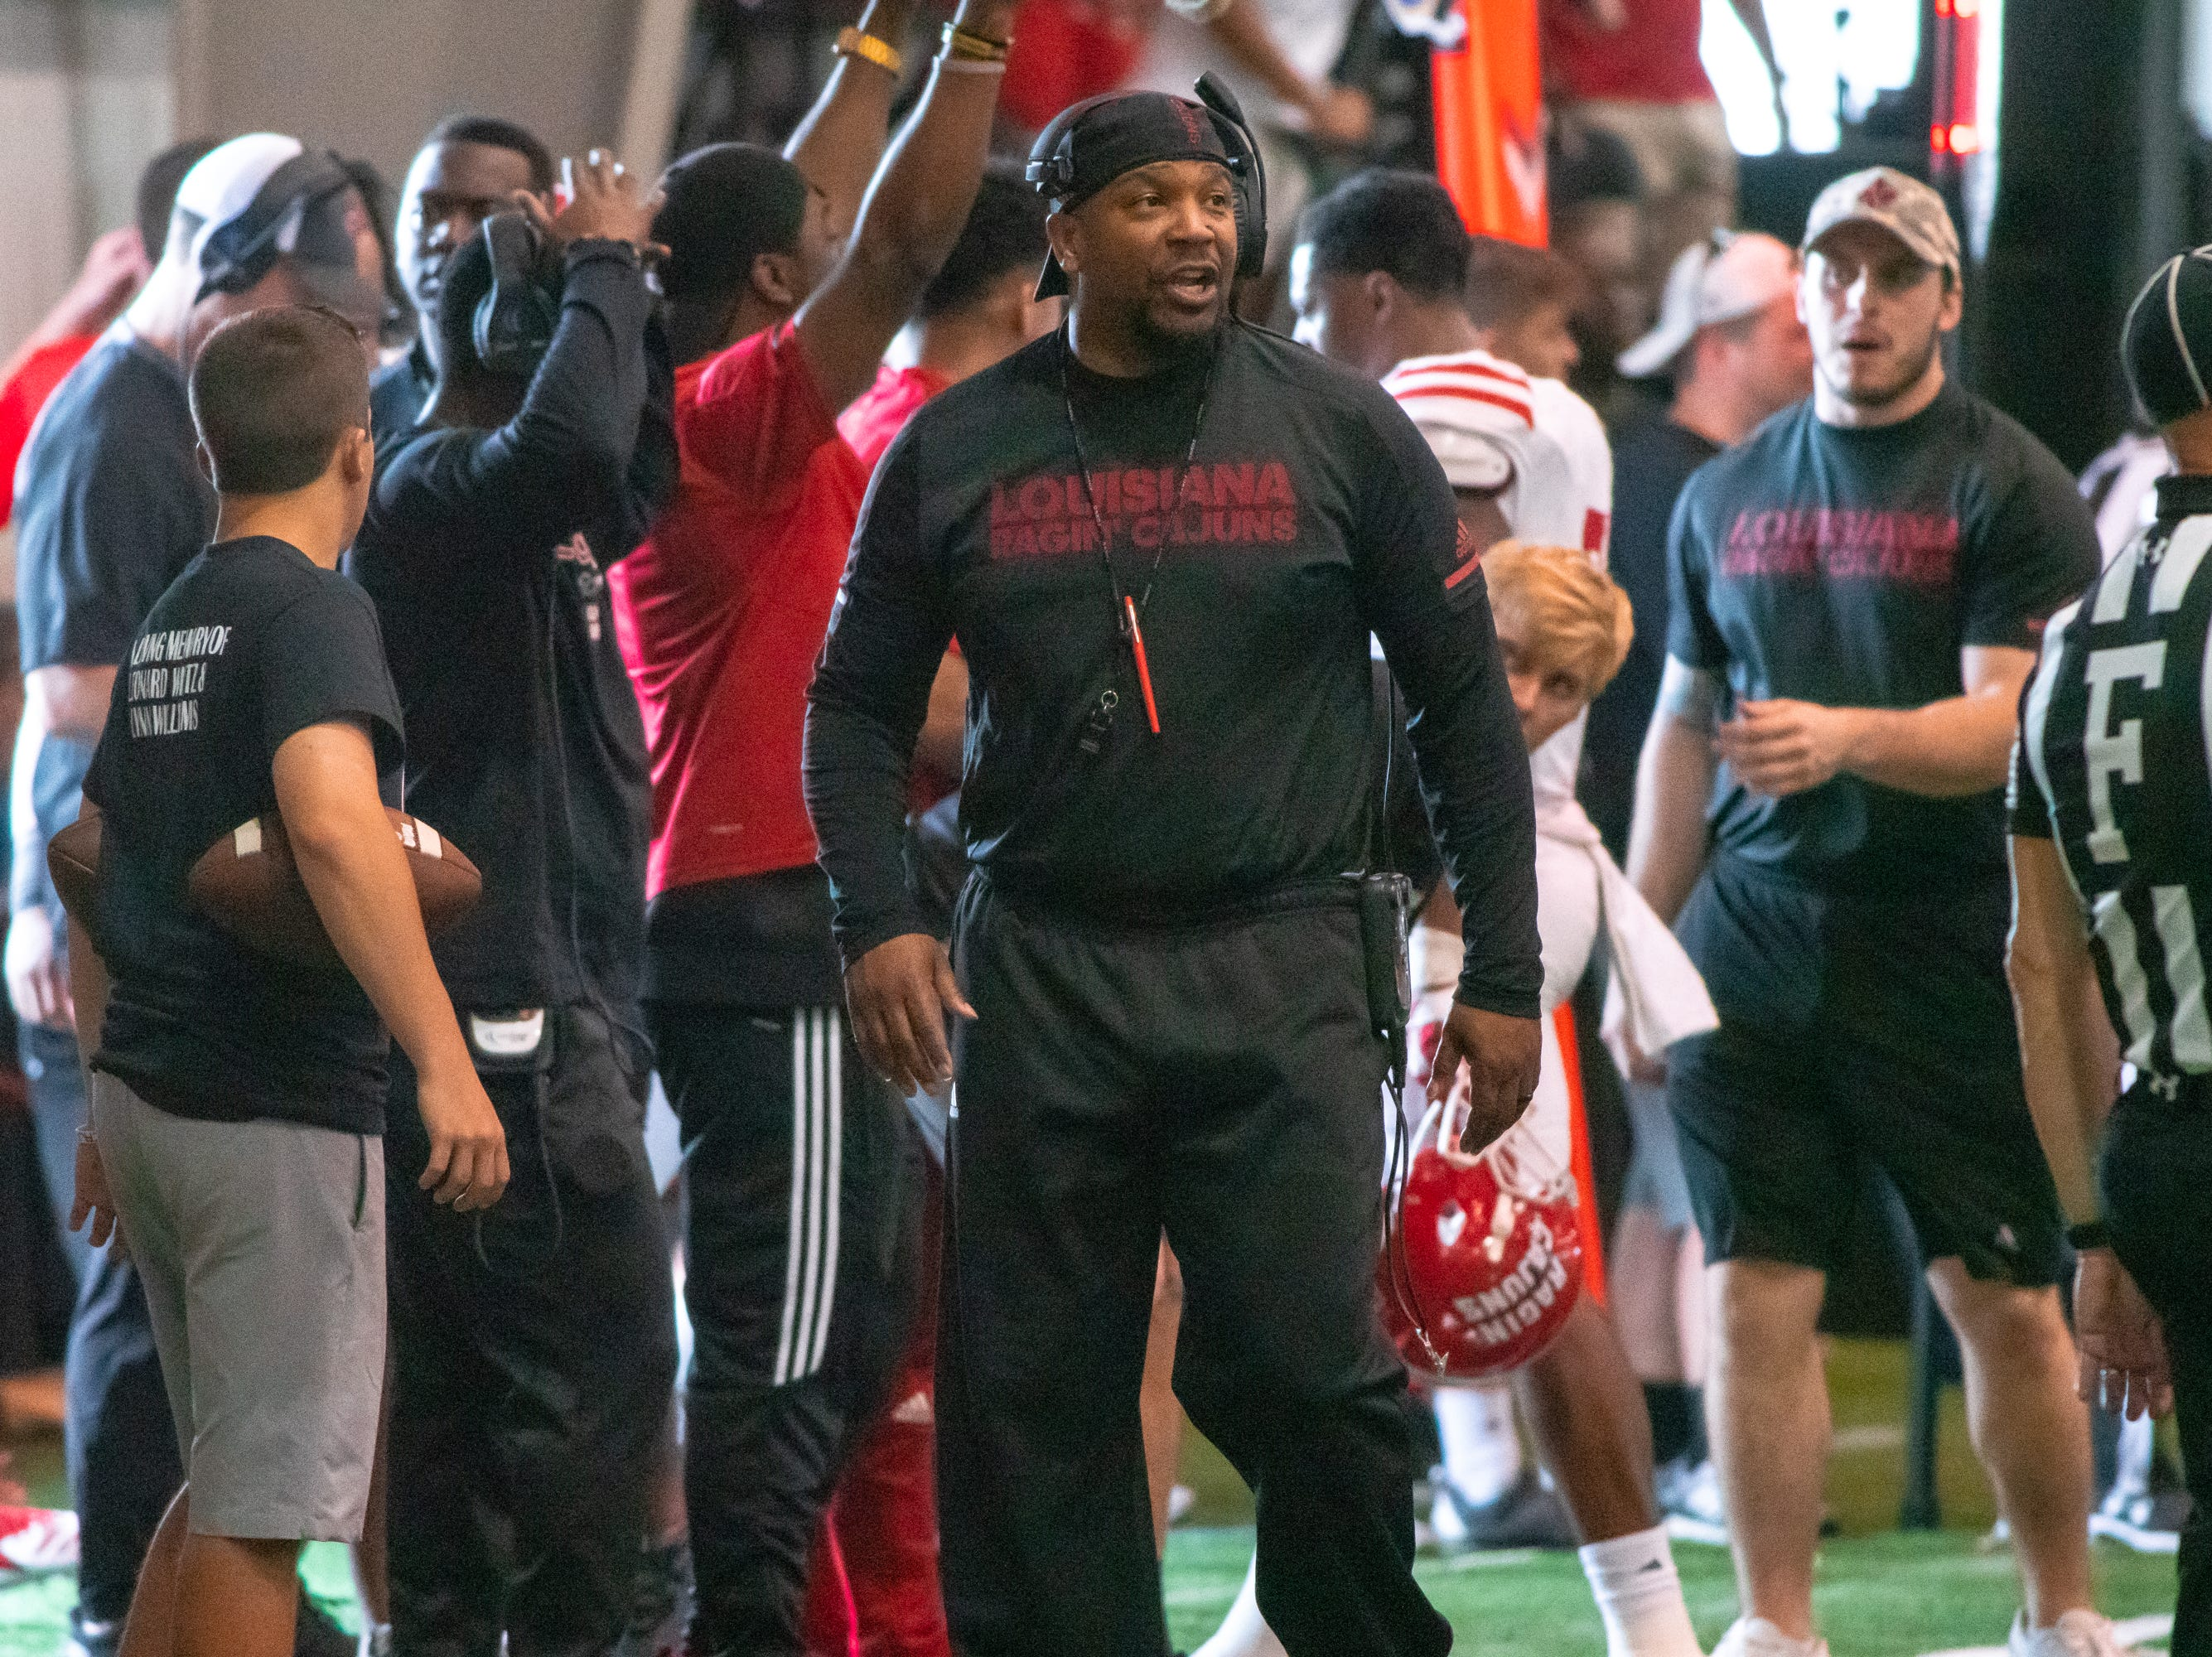 UL's assistant head coach Jabbar Juluke on the sidelines as the Ragin' Cajuns football team plays their annual Spring football game against one another in the Leon Moncla trainig facility on April 13, 2019.